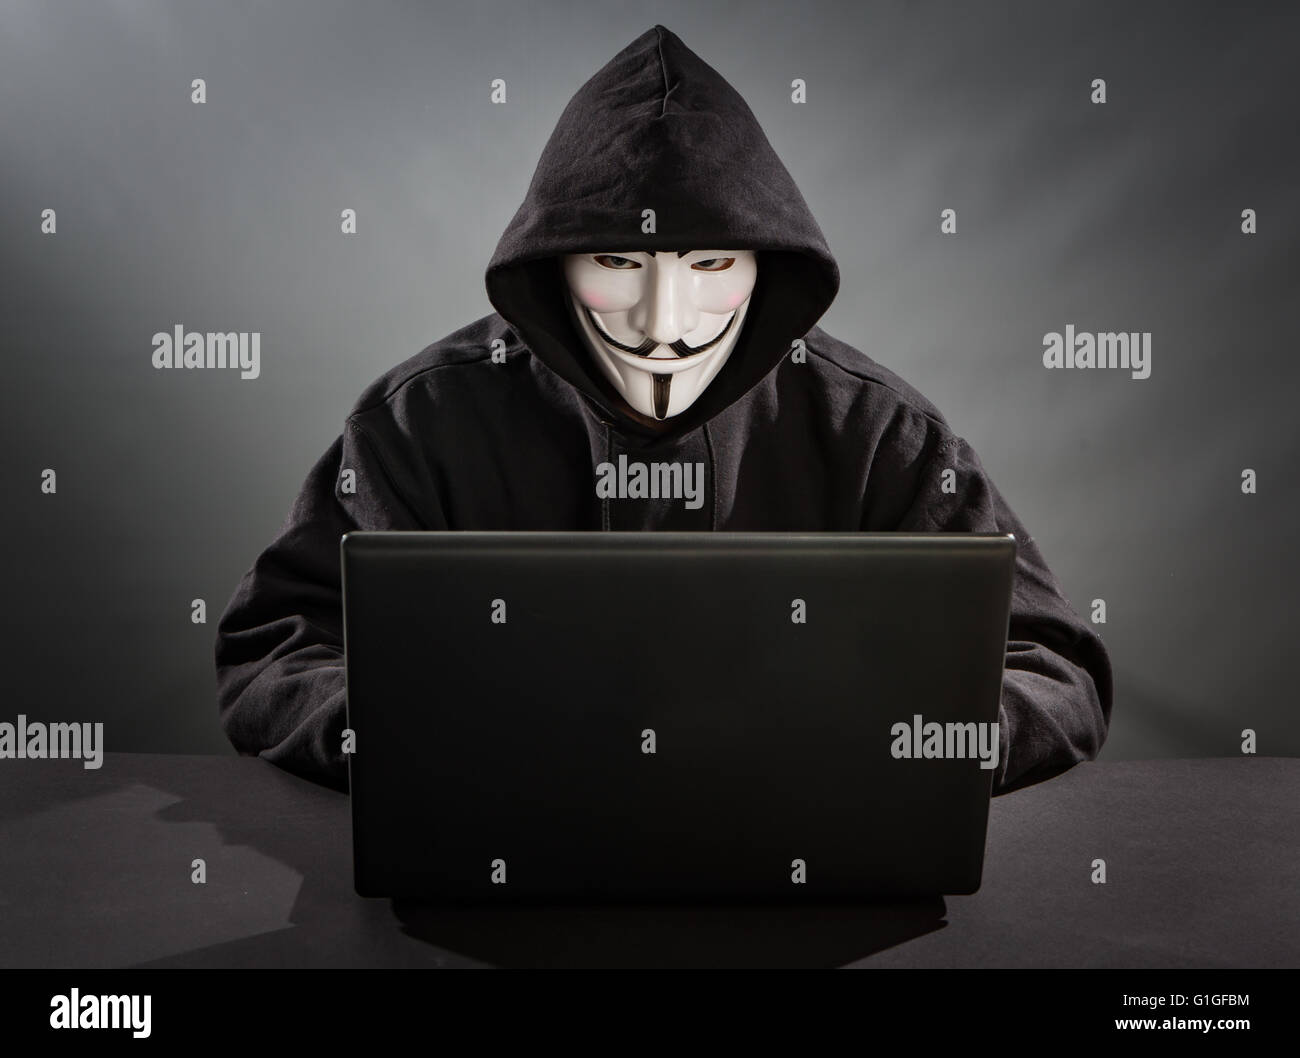 Bełchatow, Poland - December 18, 2015: Man with the laptop wearing Vendetta mask - symbol for the online hacktivist - Stock Image